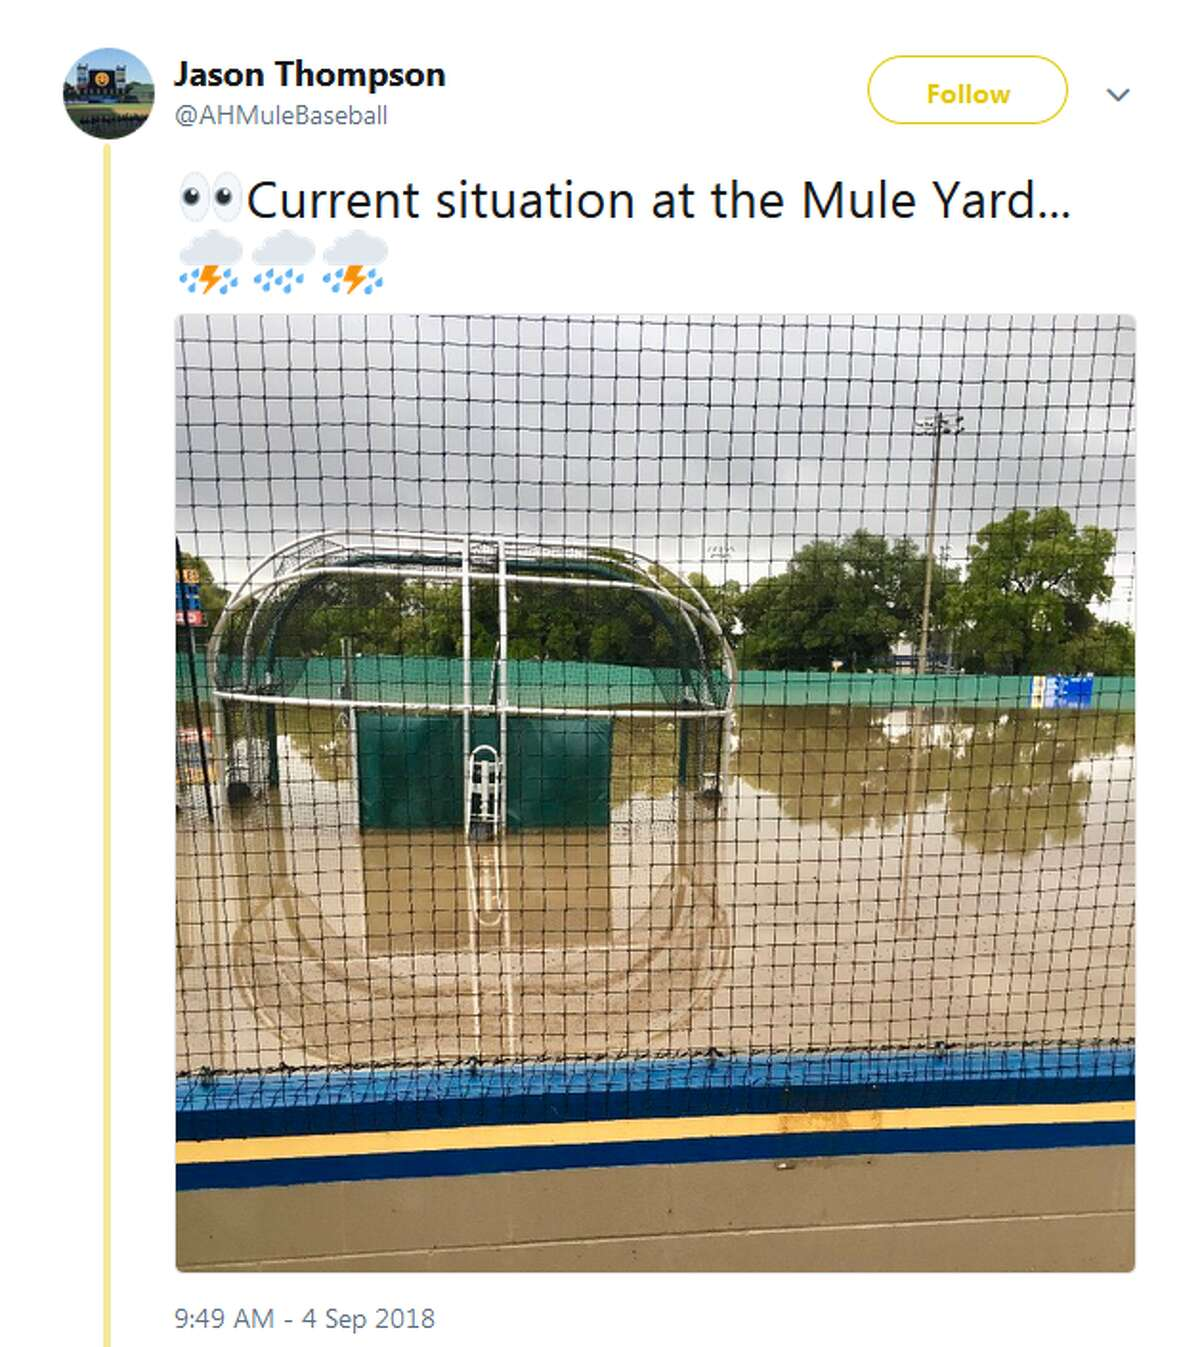 @AHMuleBaseball: Current situation at the Mule Yard...